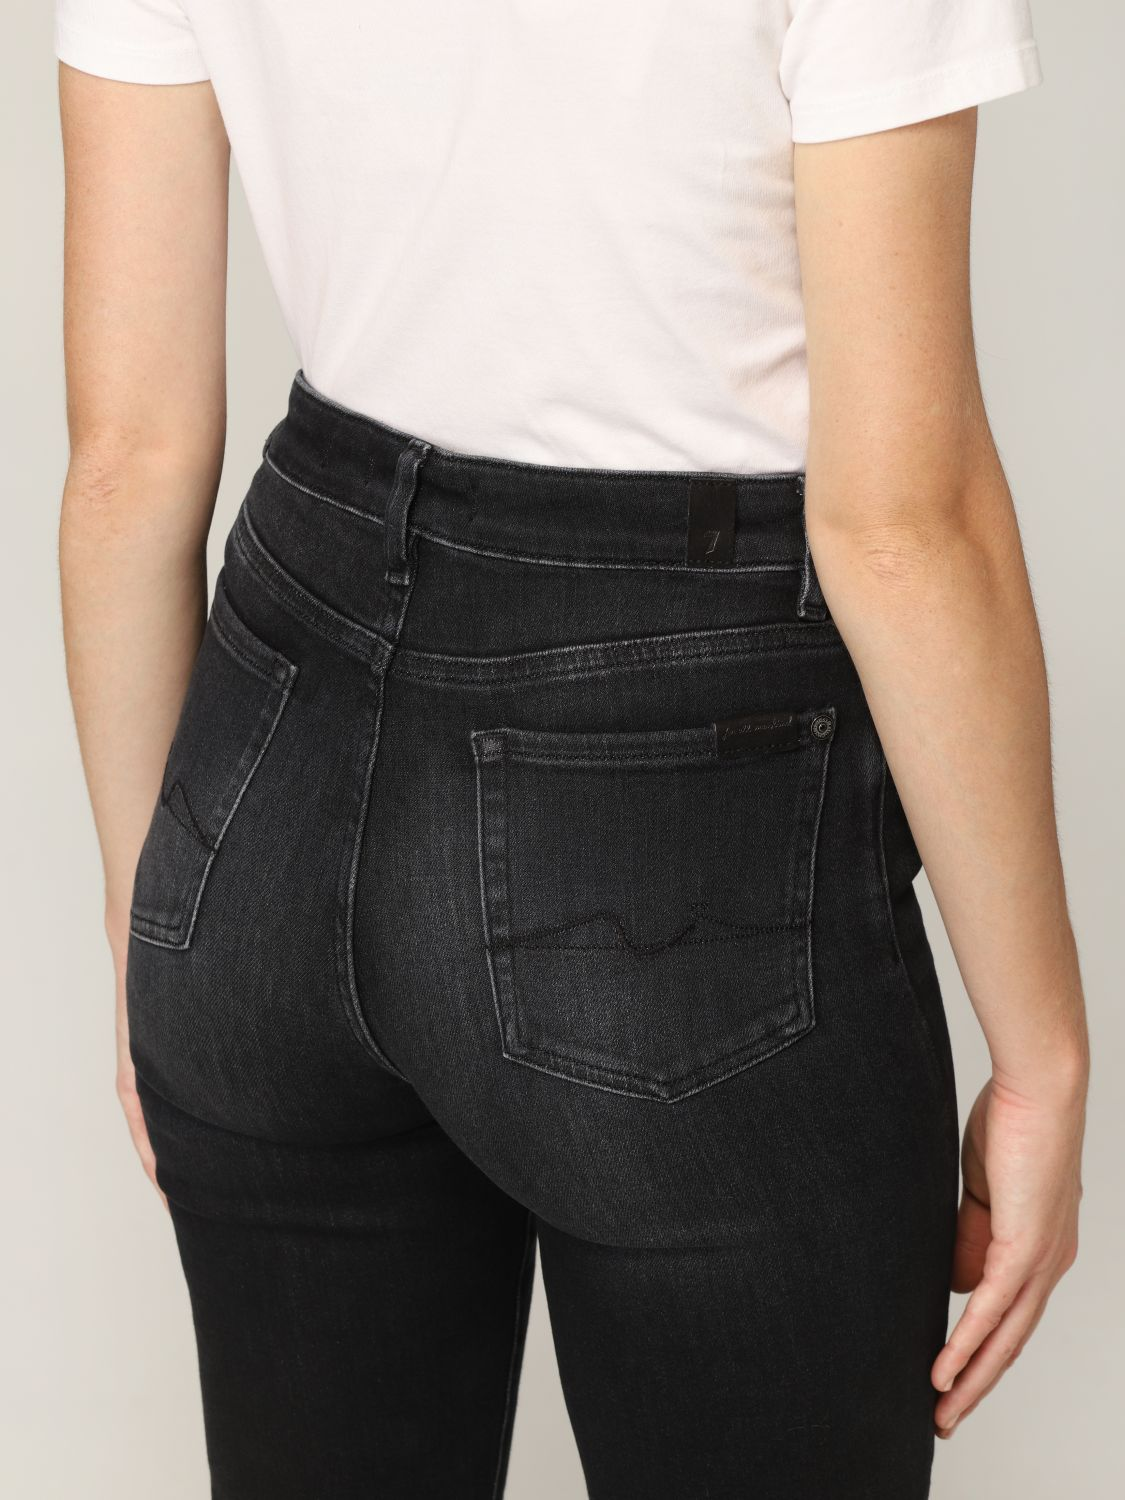 Jeans 7 For All Mankind: Jeans donna 7 For All Mankind nero 3